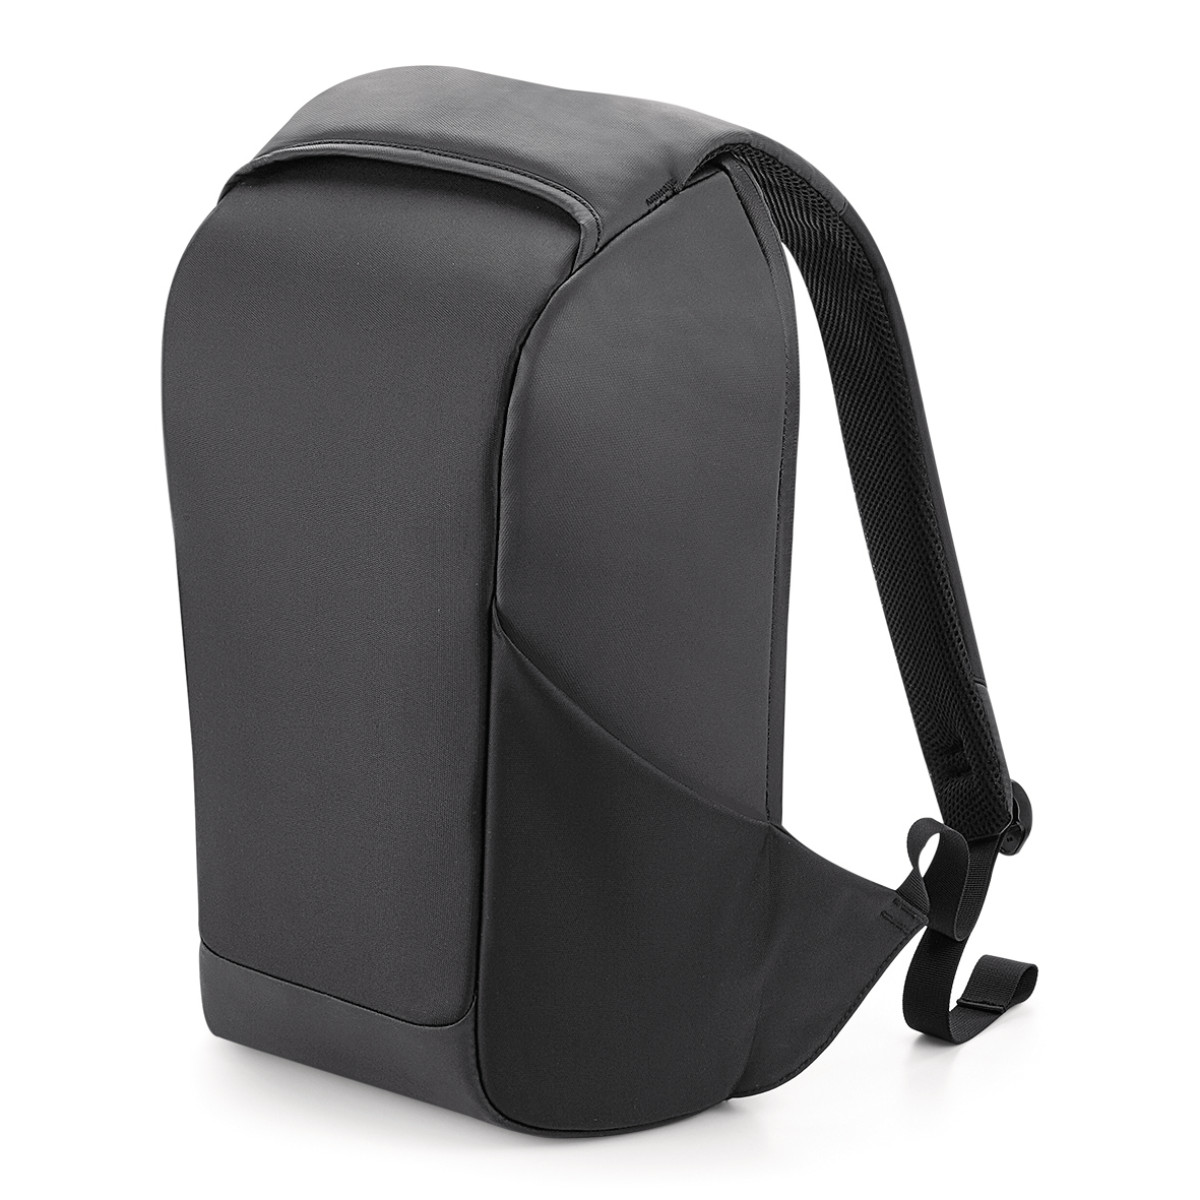 Quadra Project Charge Security Backpack